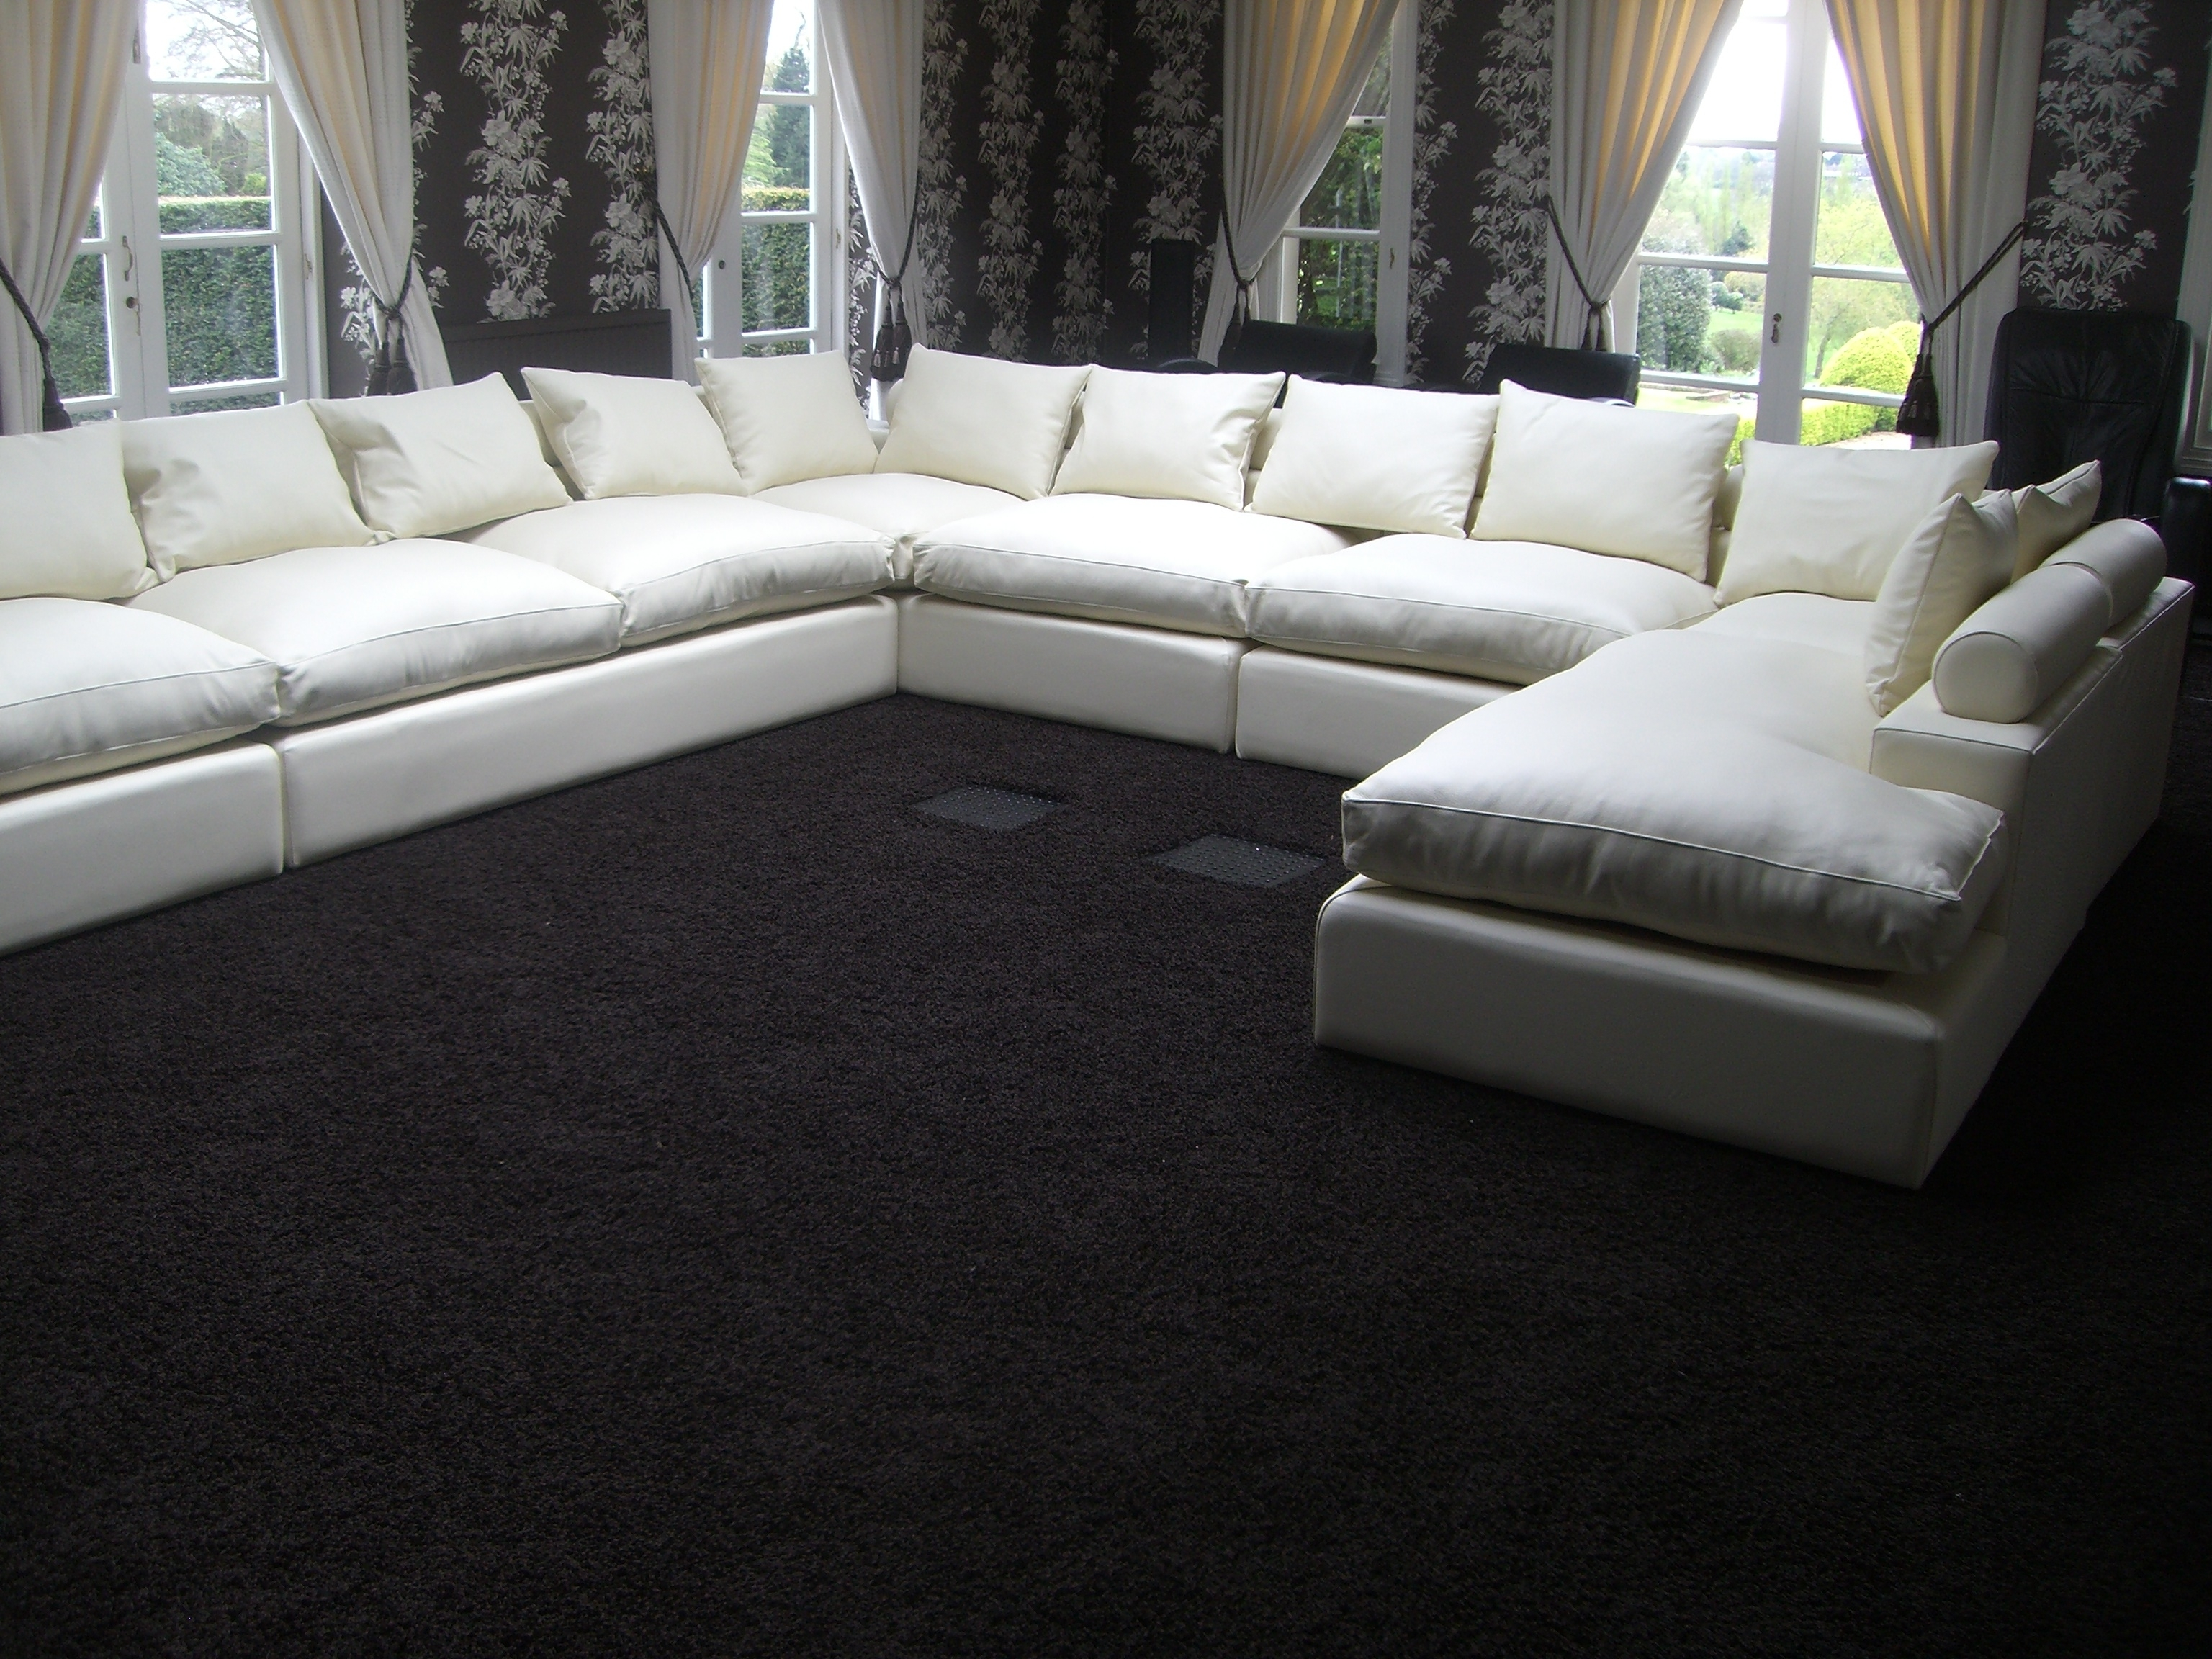 Large U Shaped Sofa – Fjellkjeden Regarding Huge U Shaped Sectionals (Image 7 of 10)